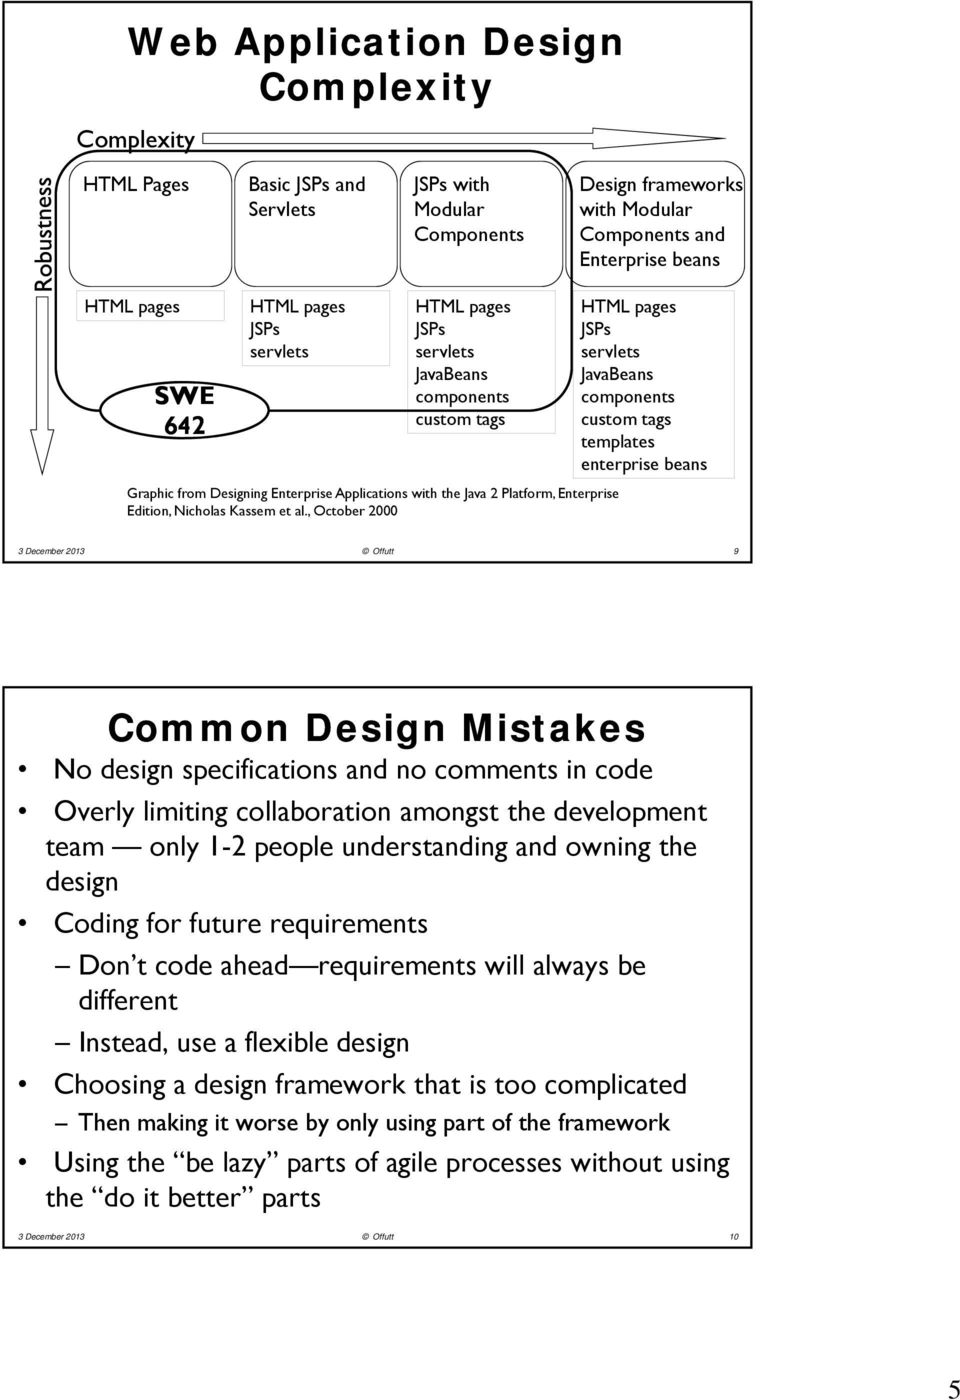 , October 2000 JSPs JavaBeans components custom tags templates enterprise beans 3 December 2013 Offutt 9 Common Design Mistakes No design specifications and no comments in code Overly limiting